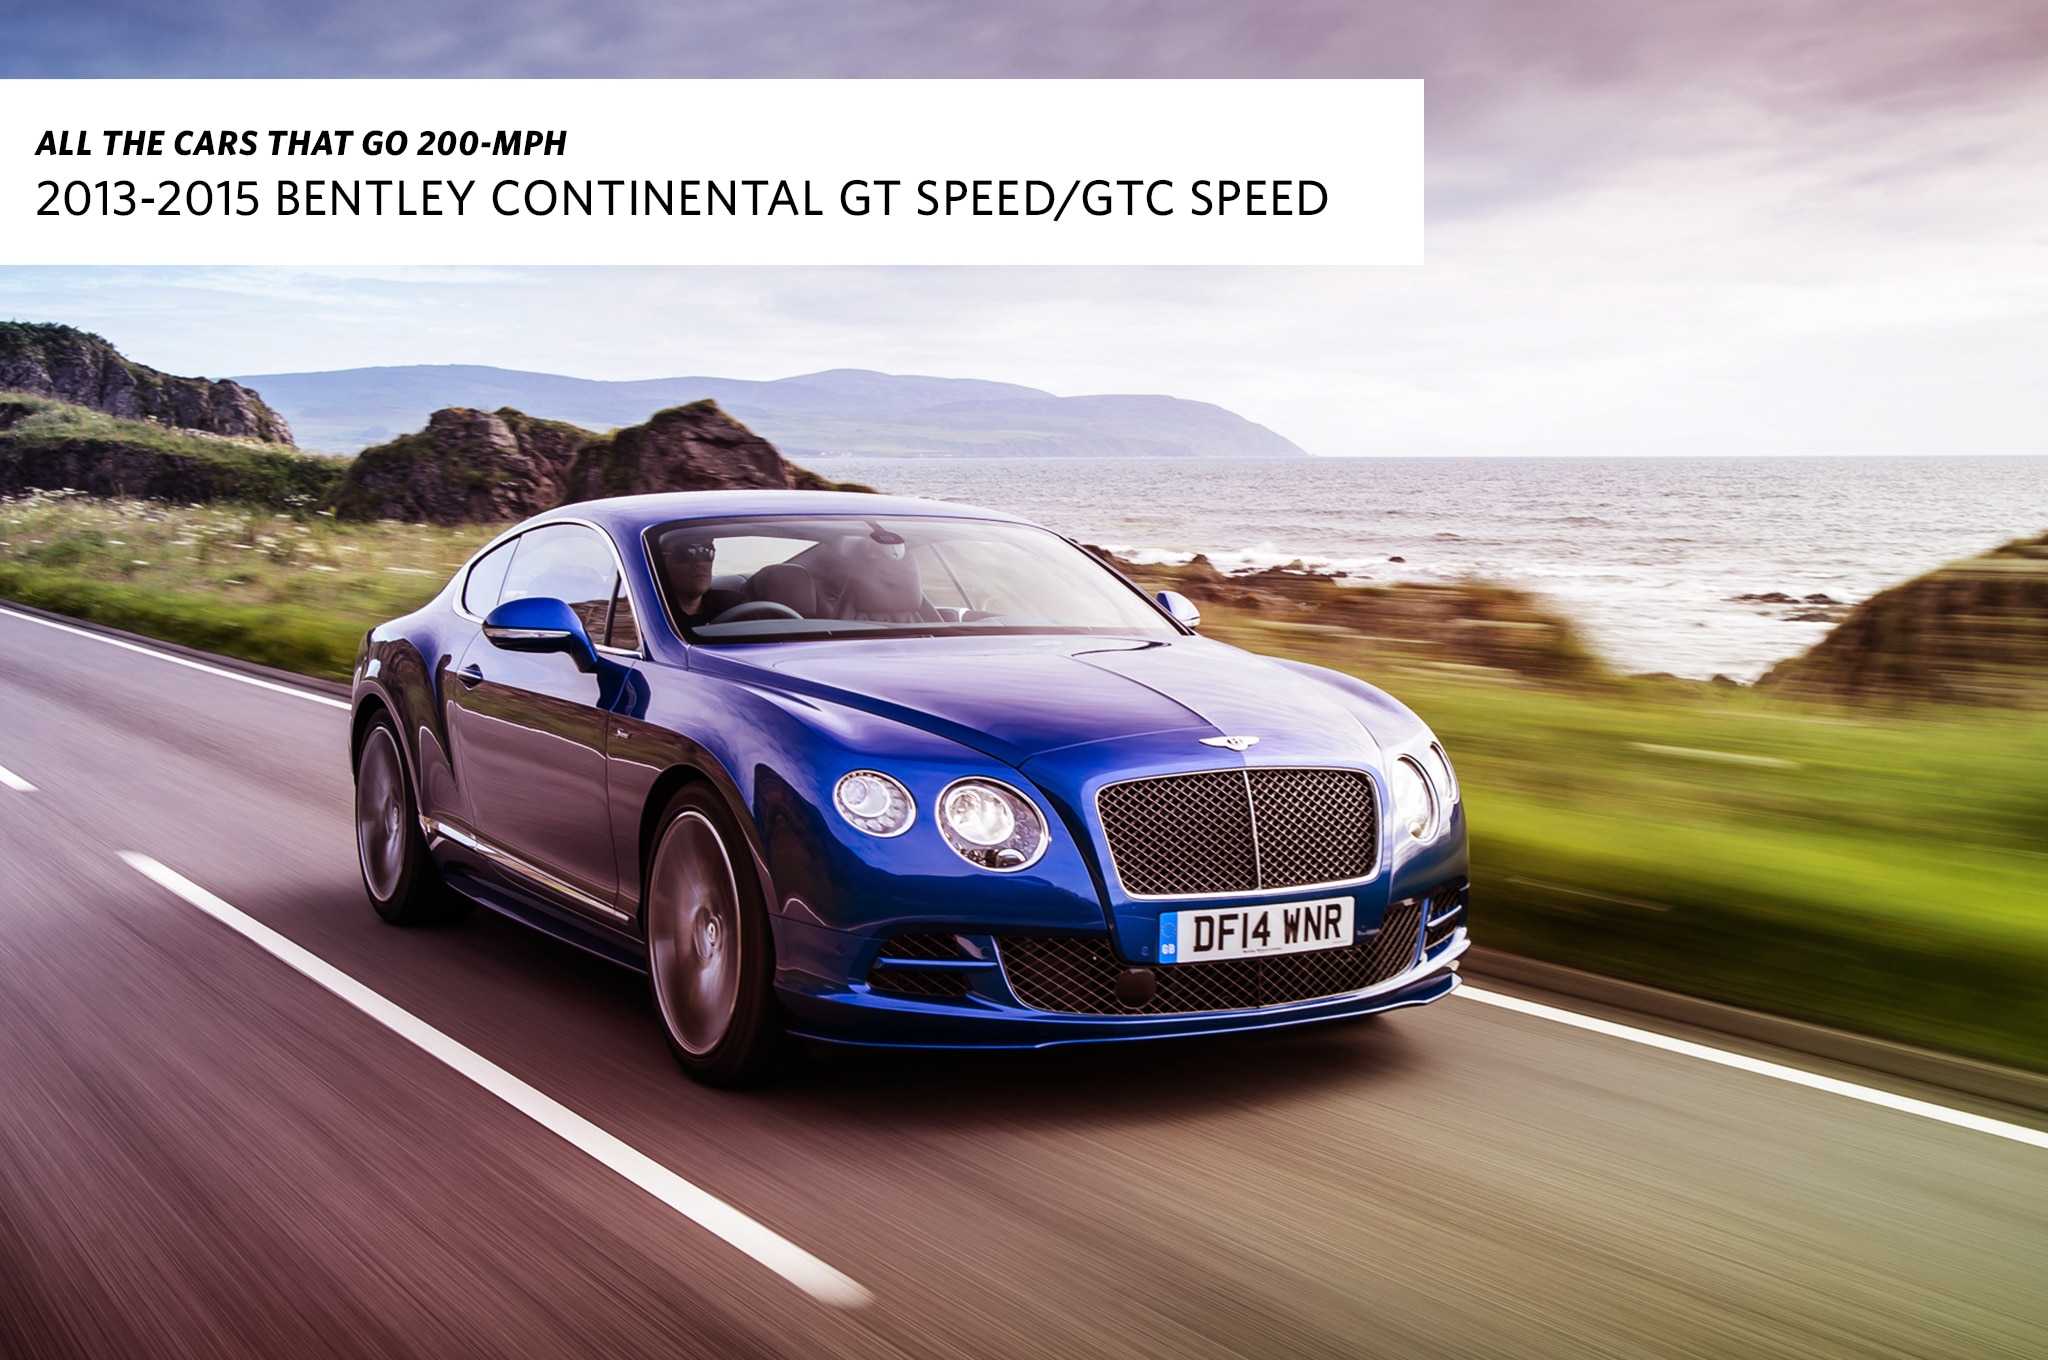 2013 2015 Bentley Continental GT Speed/GTC Speed Top Speed: 203 206 Mph.  Tacking U201cSpeedu201d Onto The End Of A Model Name Is No New Trick For Bentley,  ...